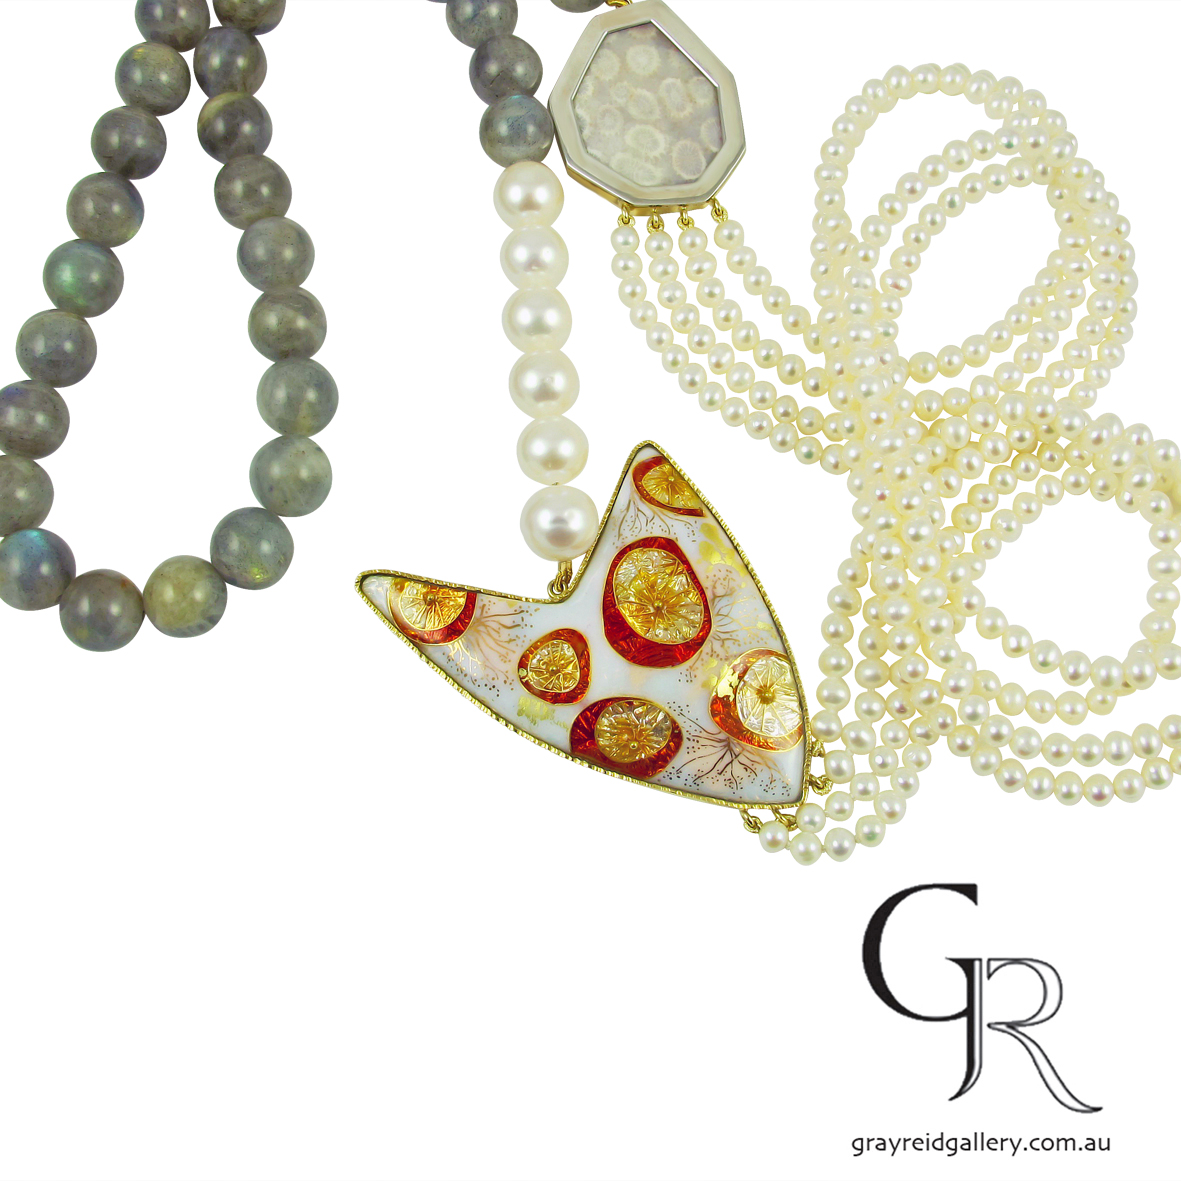 Enamel, Pearl & Labradorite Necklace by Debbie Sheezel